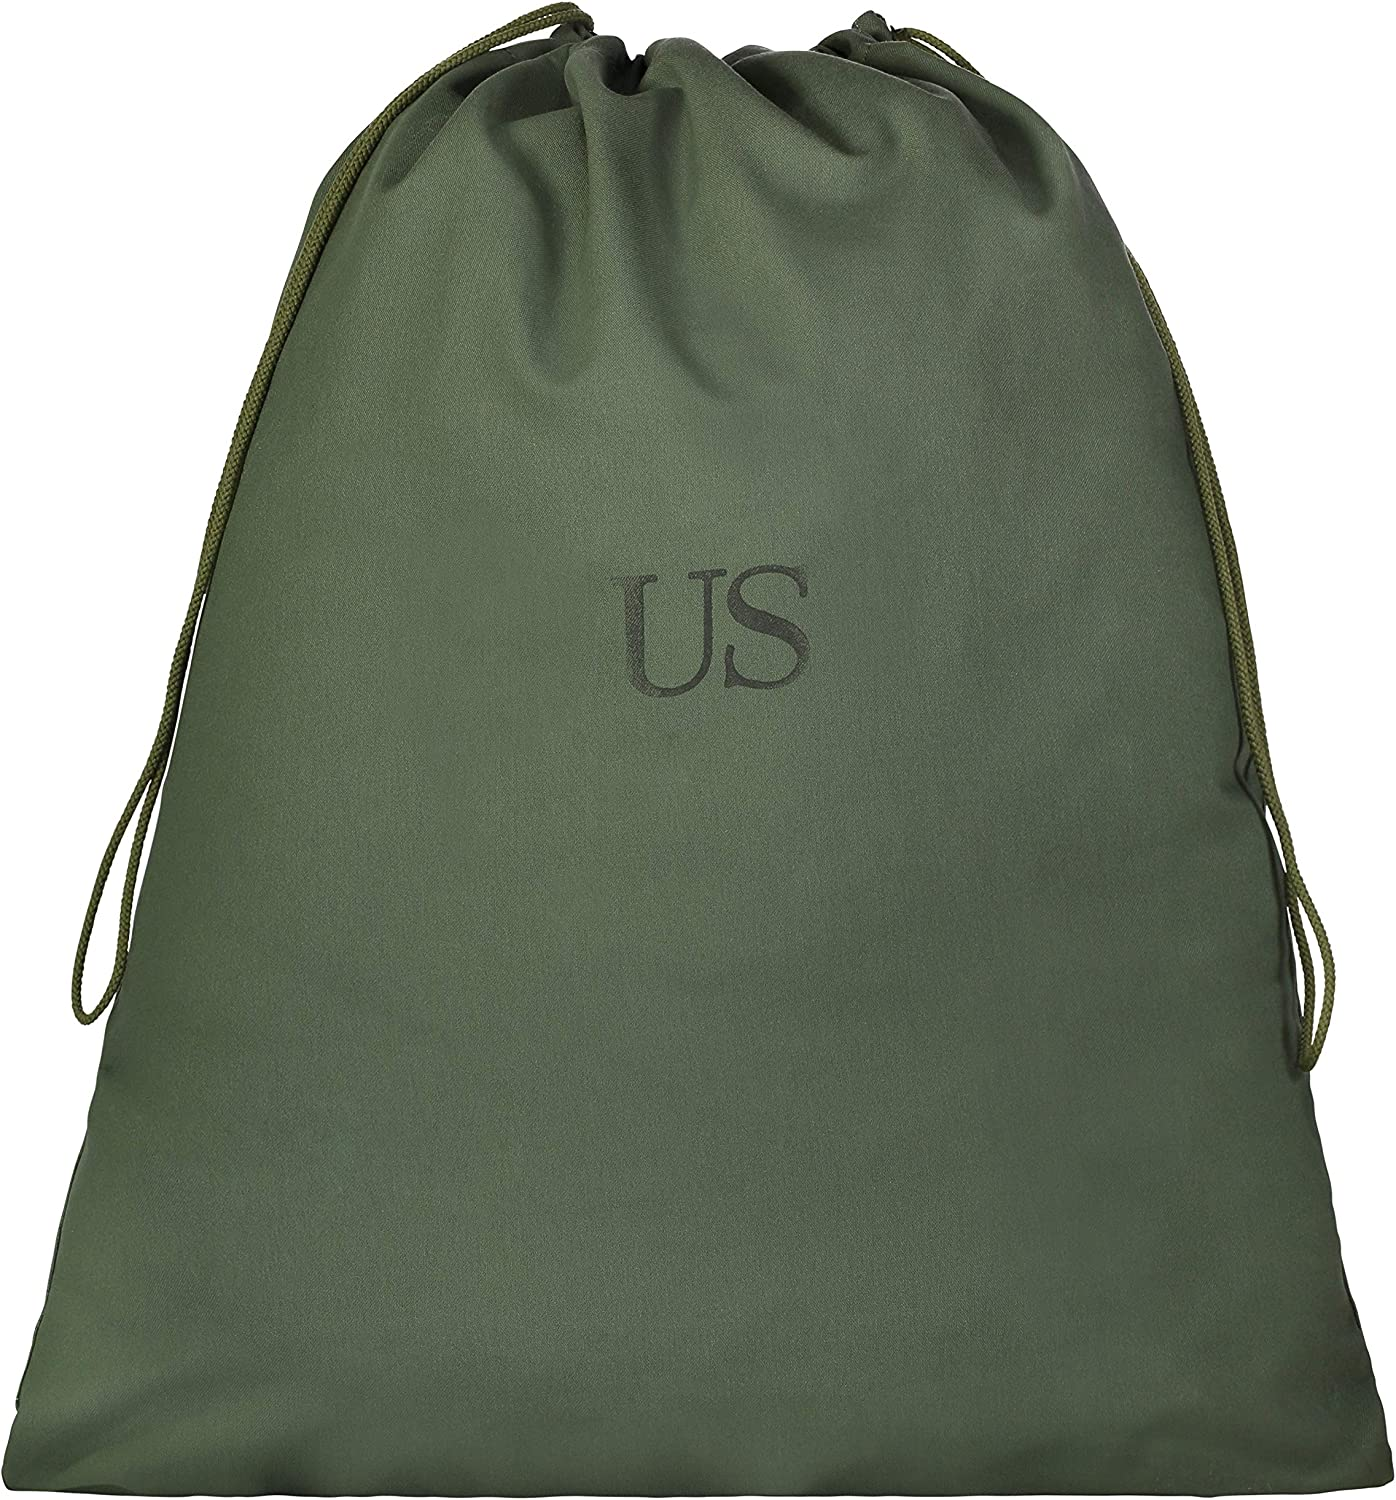 USGI US Military Barracks Cotton Canvas Laundry Bag, Olive Green